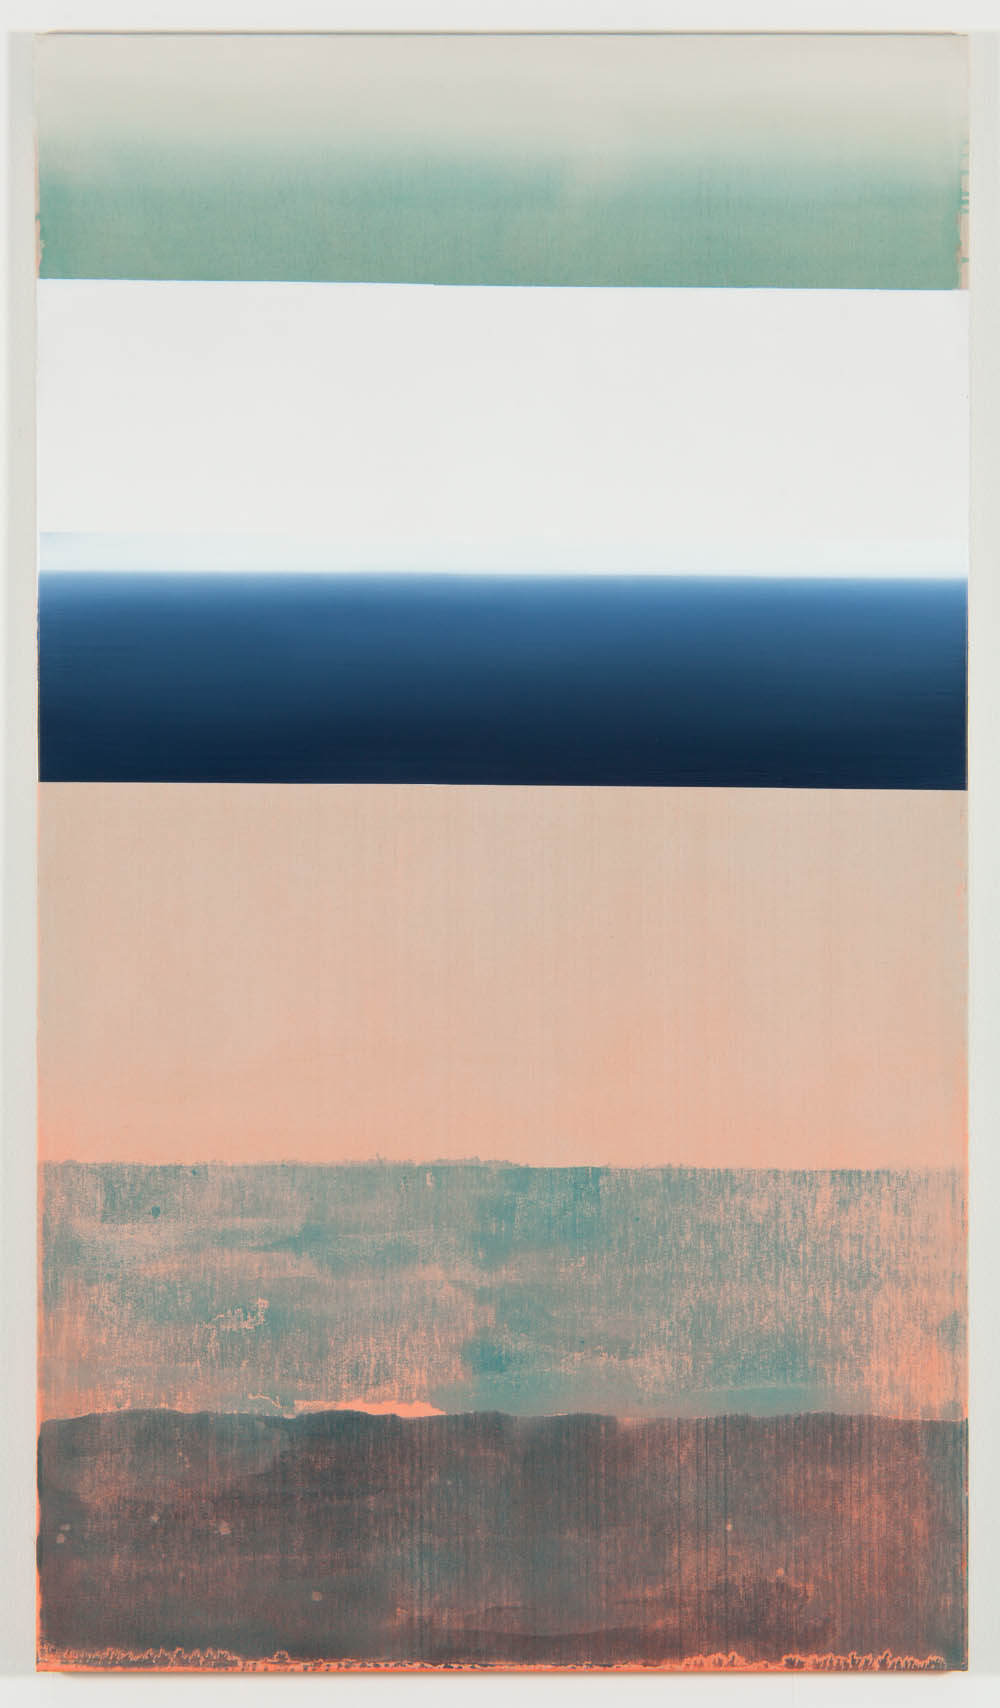 Untitled, 2012, oil on canvas, 220 x 130 cm